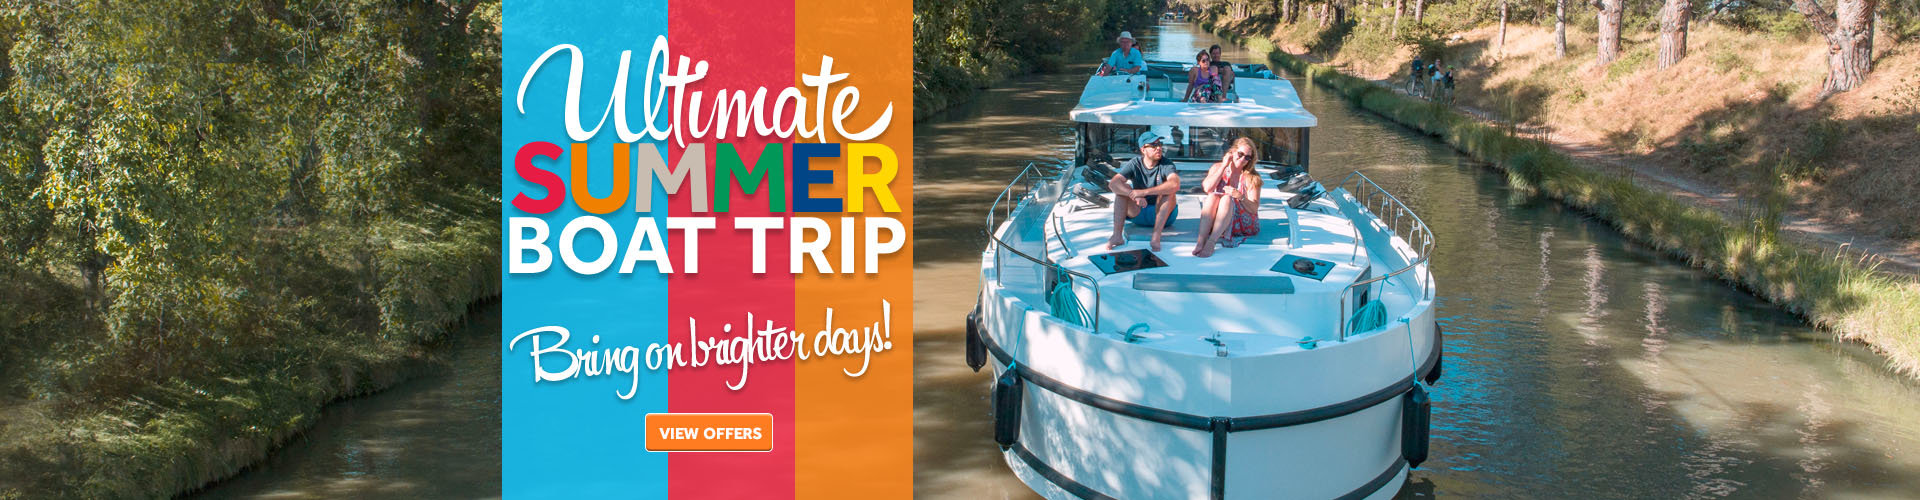 Enjoy the Ultimate Summer Boat Trip with Le Boat